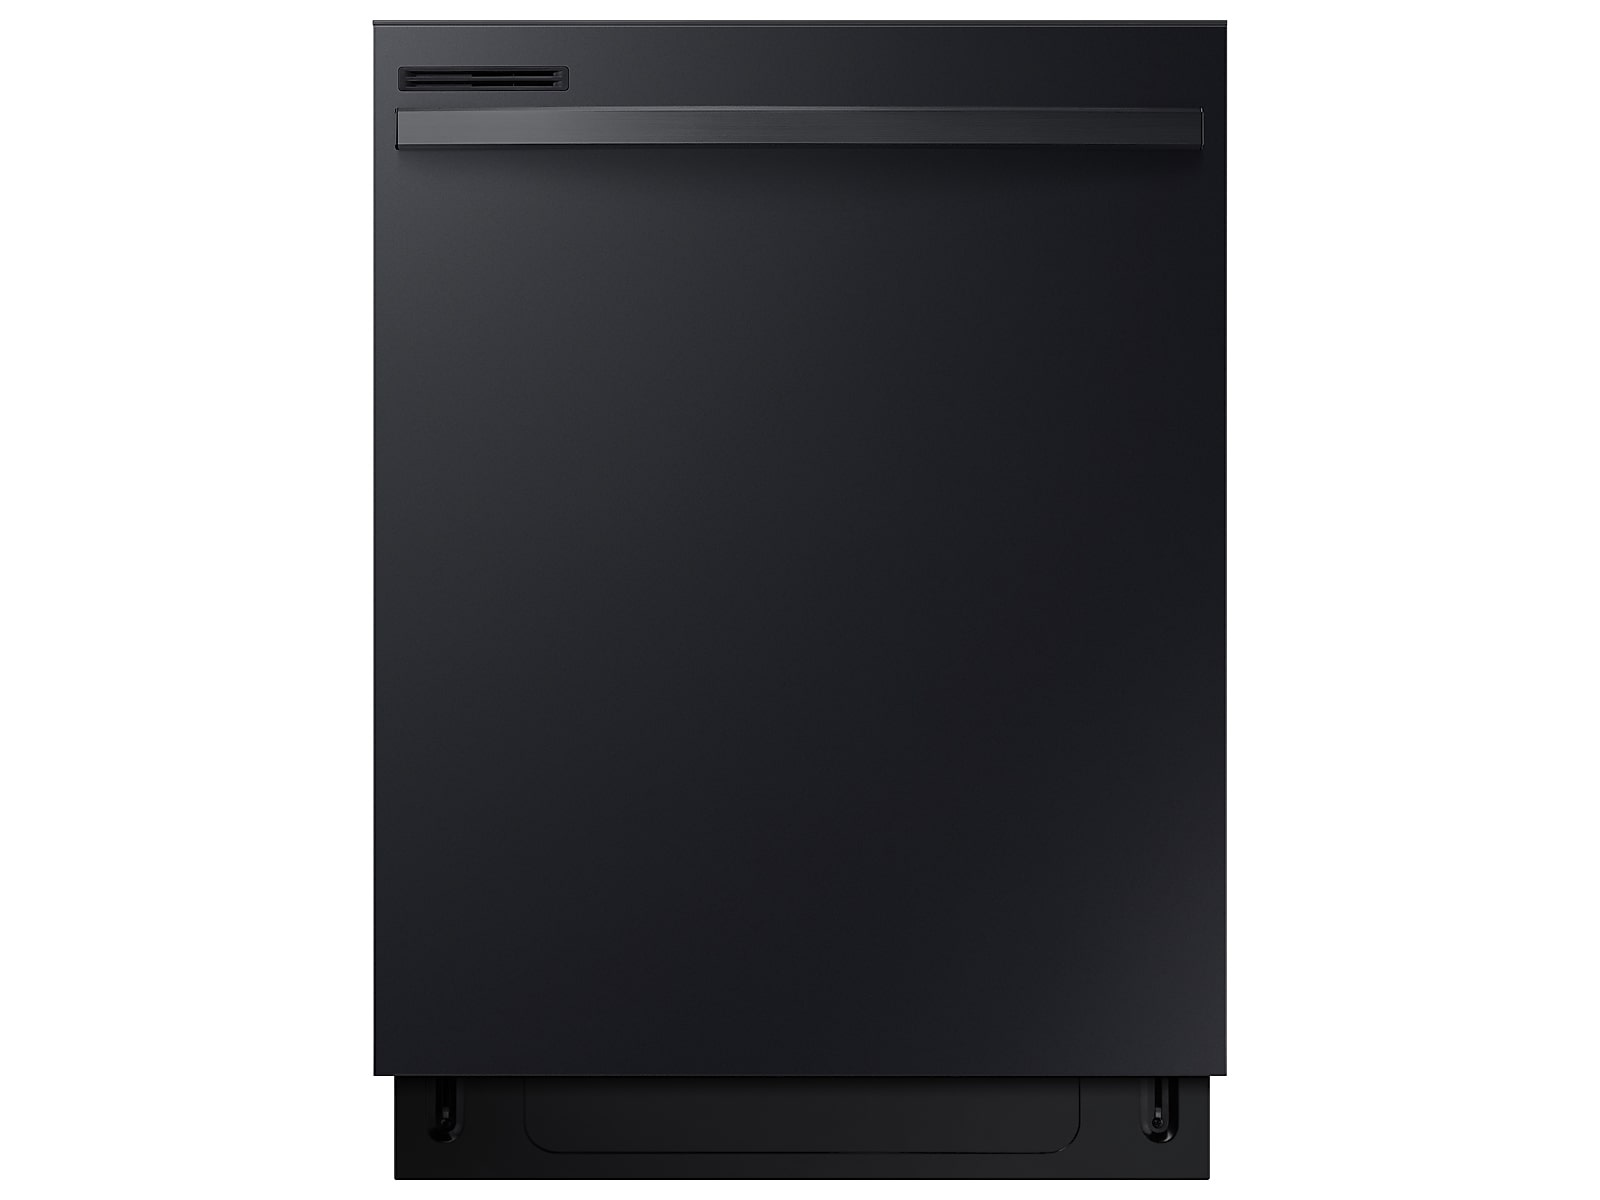 Samsung coupon: Samsung Digital Touch Control 55 dBA Dishwasher in Black(DW80R2031UB/AA)